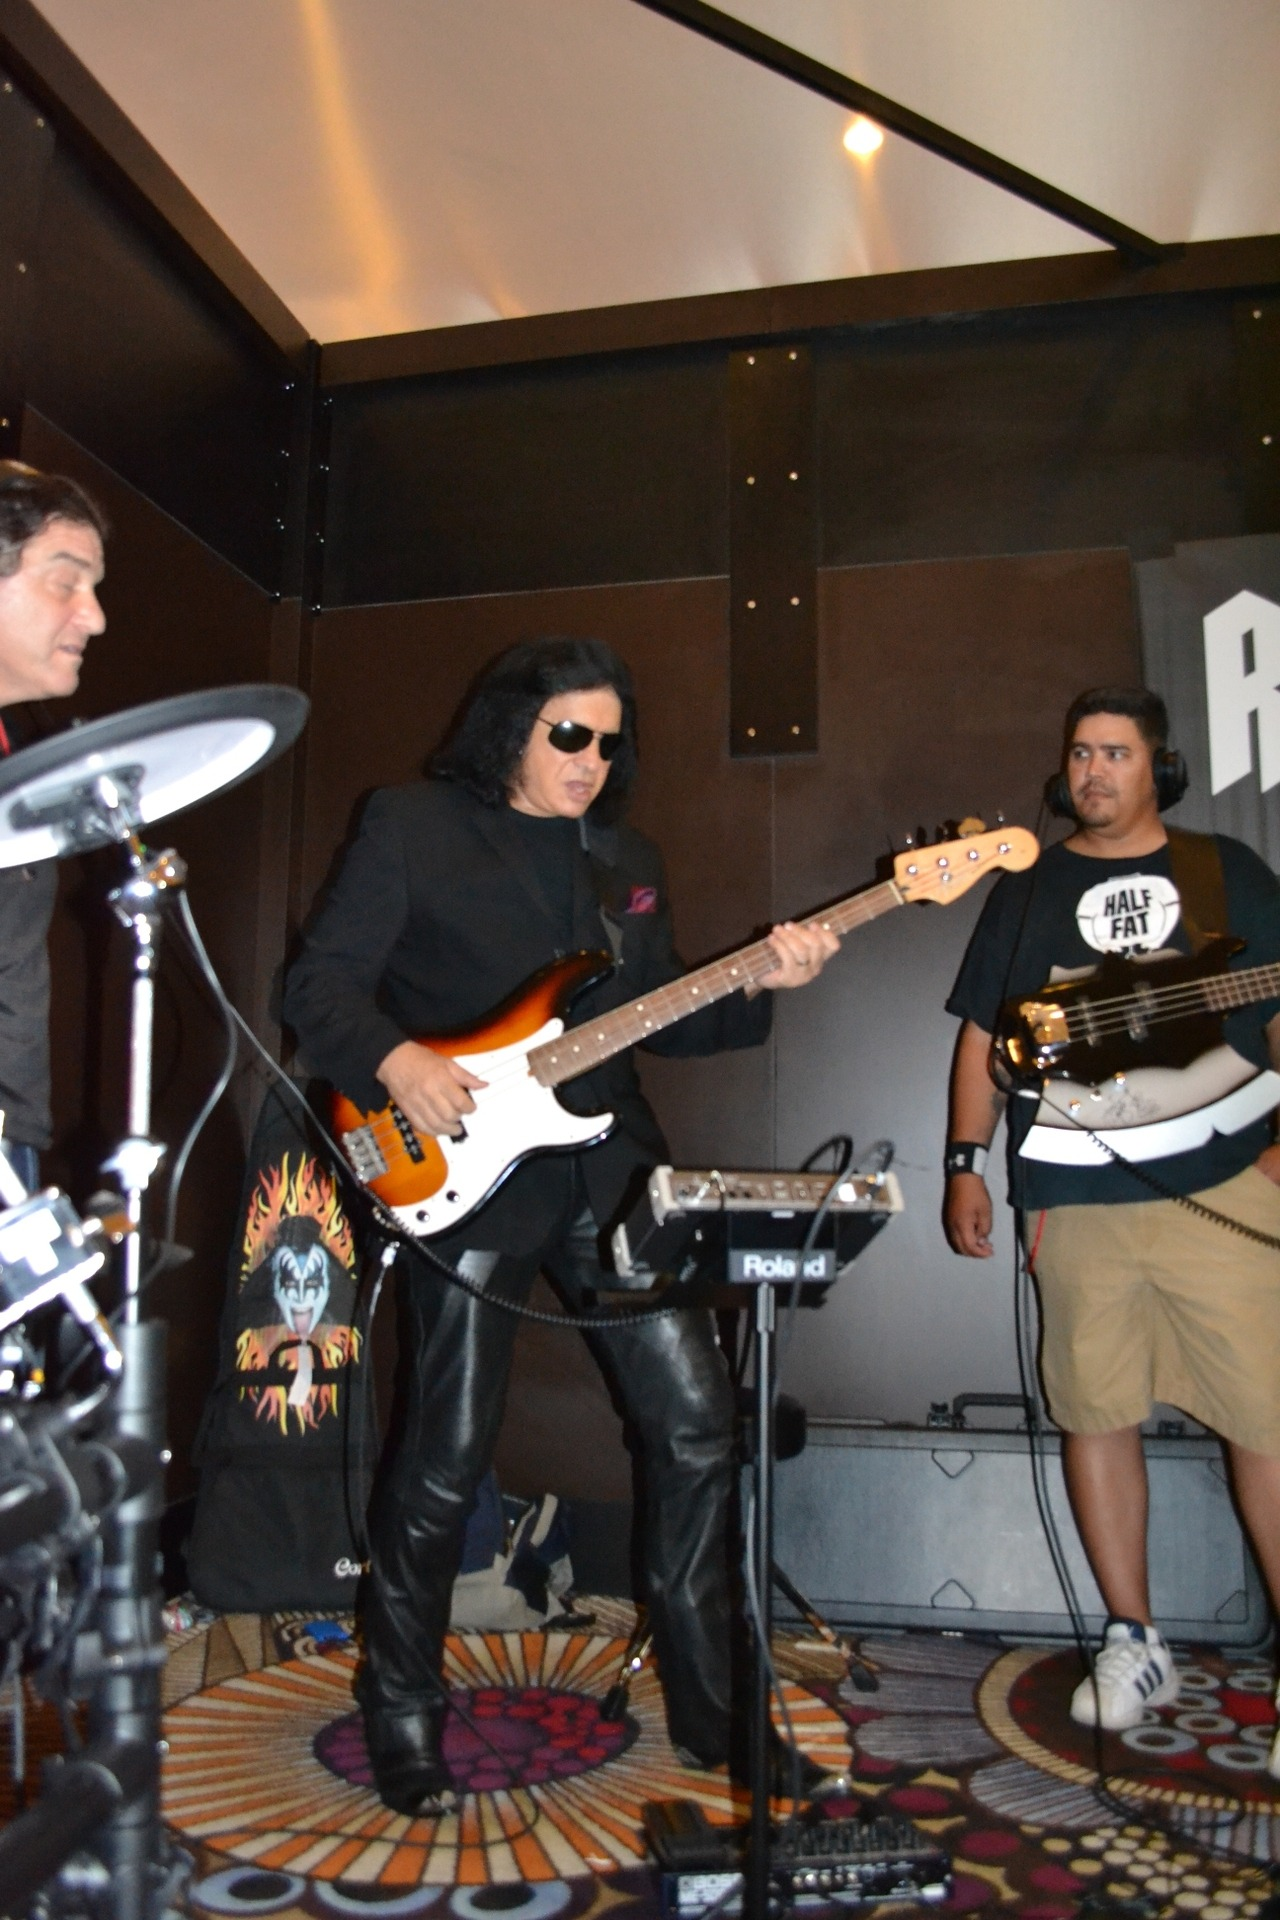 Want to jam with your fave rock star? A fan rocked out with Gene Simmons at our Rock N Roll Fantasy Camp this weekend! Find out how to get your once in a lifetime experience with your favorite rock icon here.